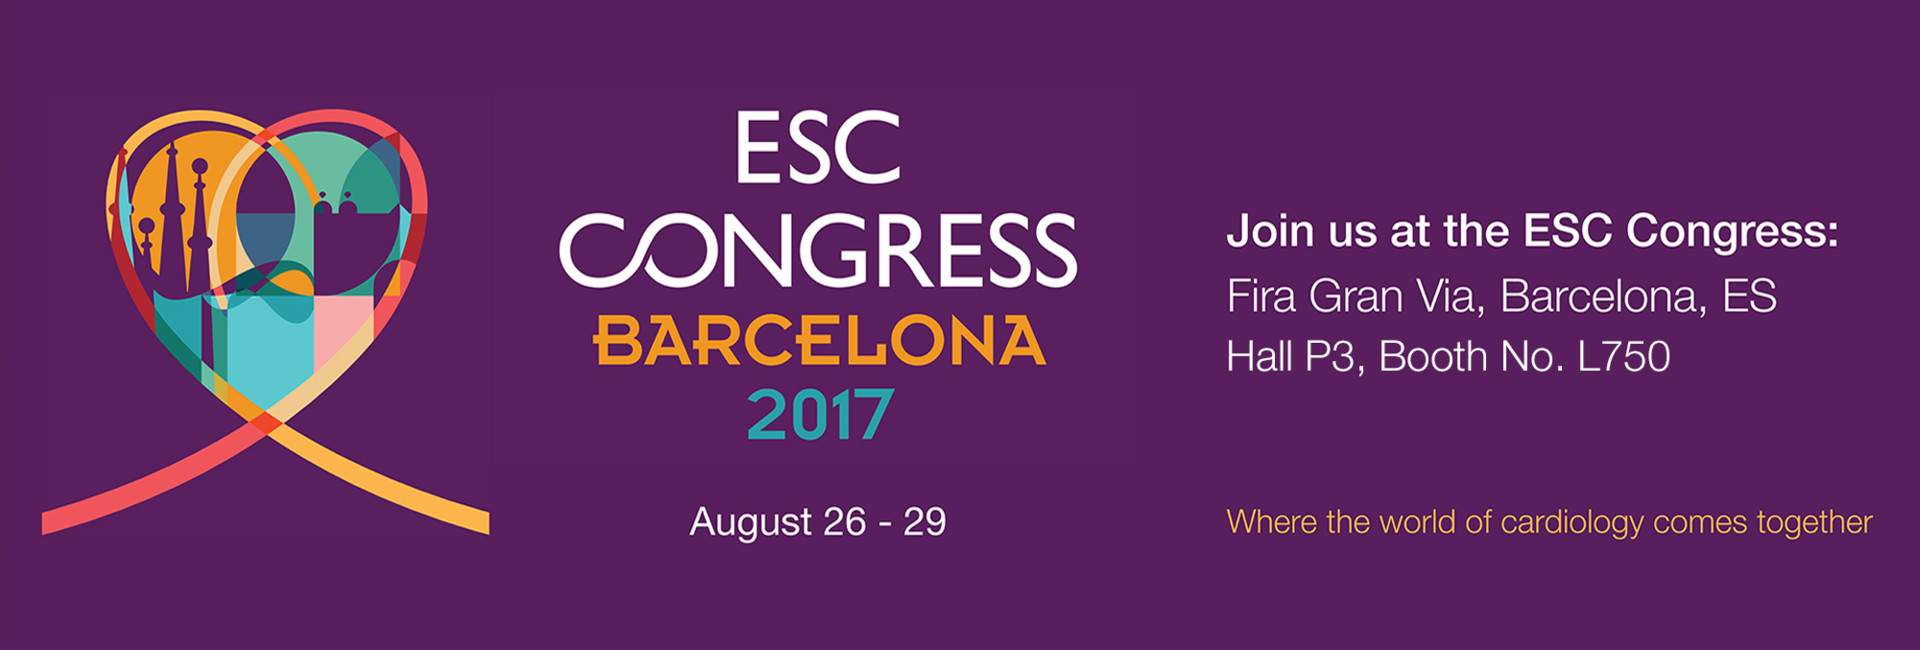 News-header-ESC-Barcelona-2017